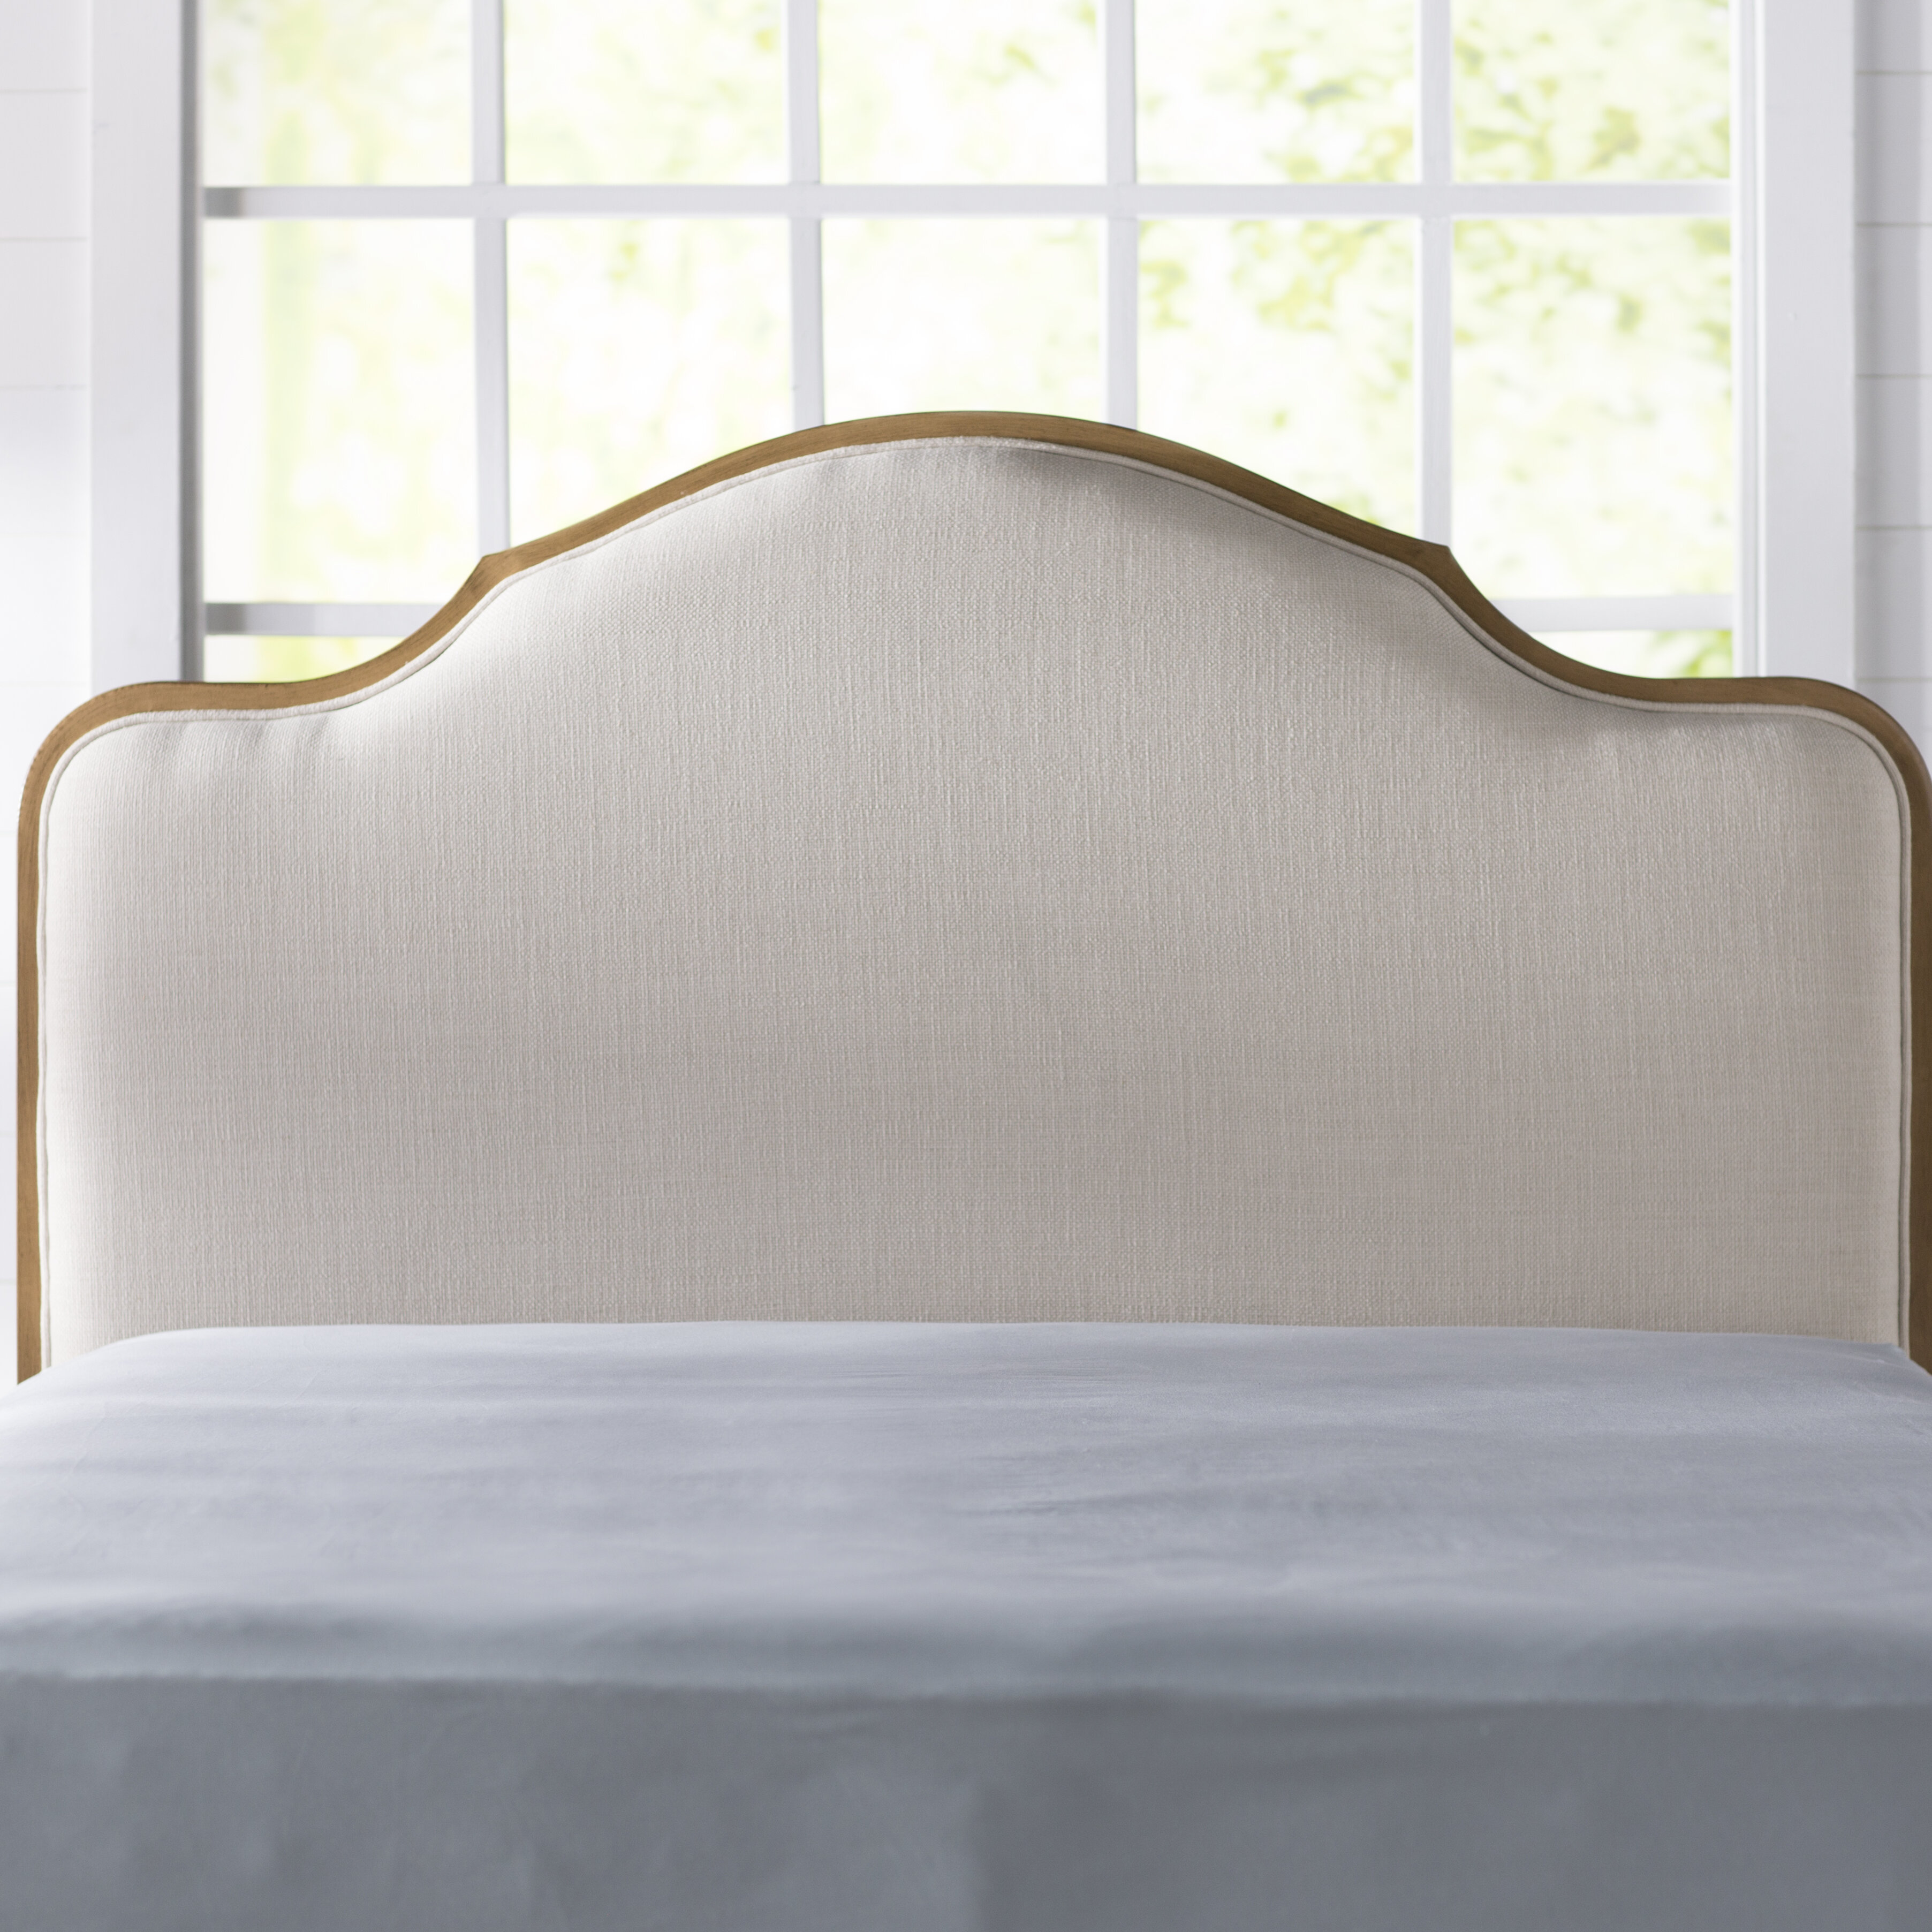 bedroom modern emerson the faux headboards a living beige headboard bring sourceimage eng twist with in details queen full traditional products dorel to exquistely your fabric leather upholstered